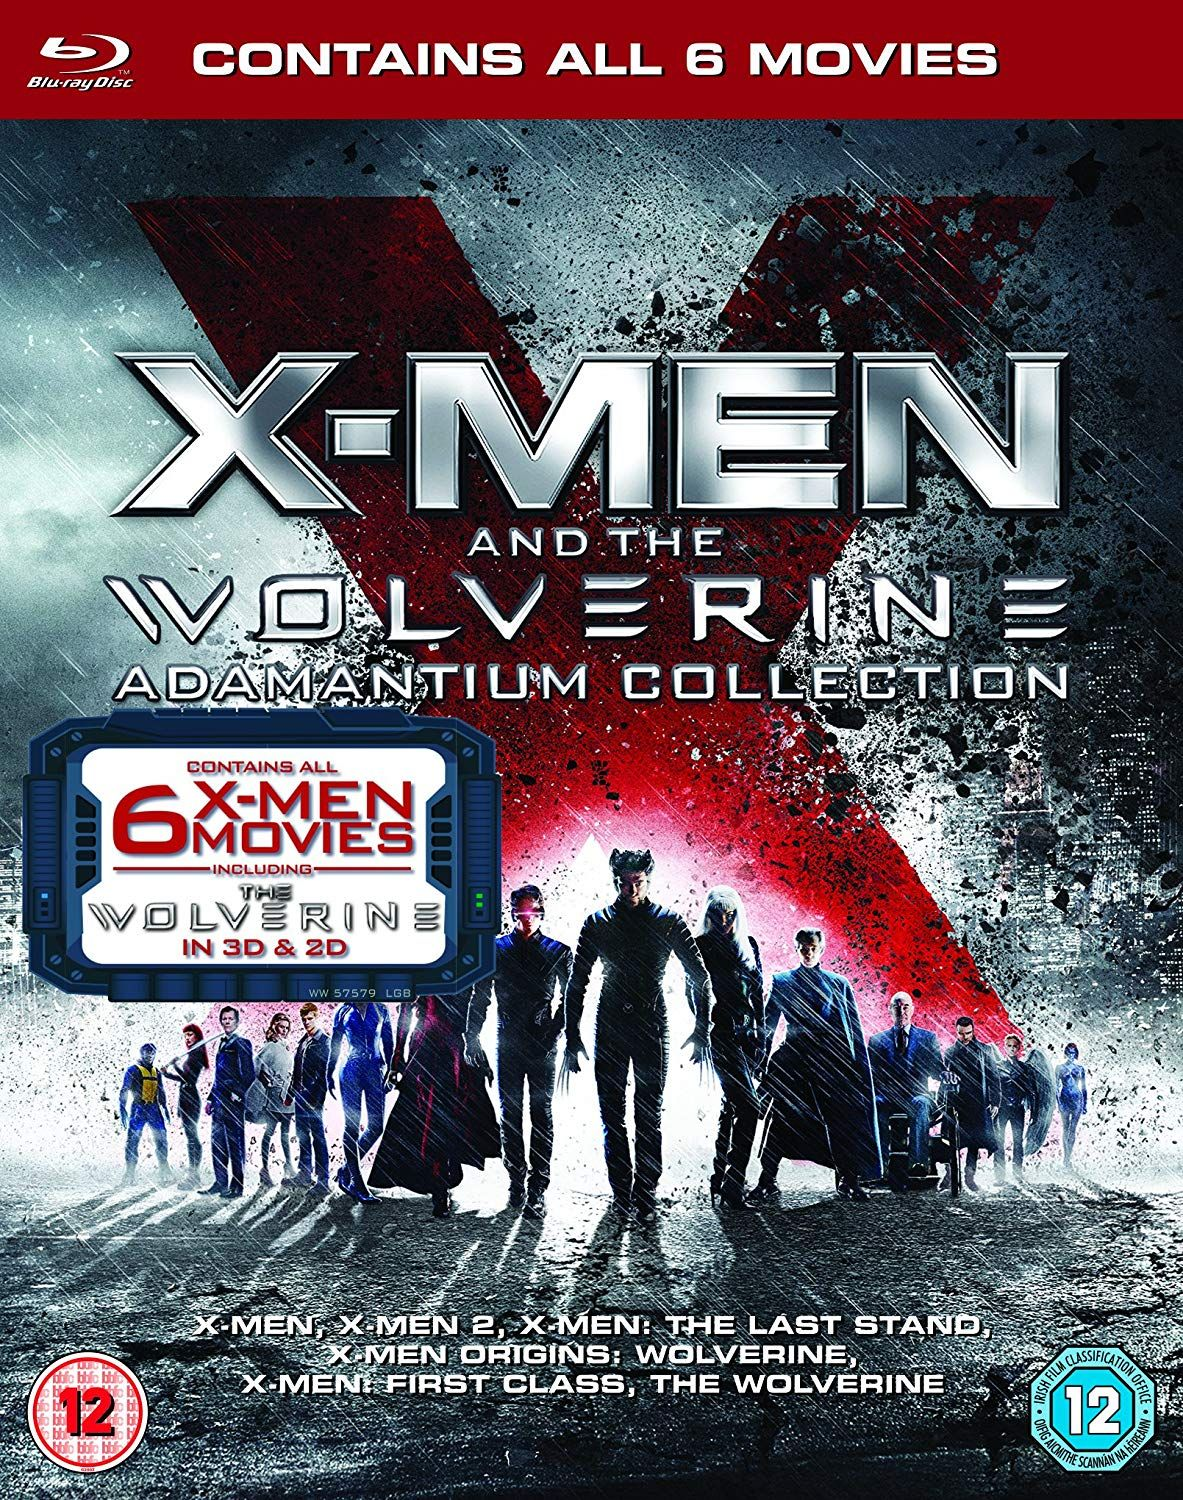 X-Men & Wolverine Adamantium Collection (Blu-ray) - 1